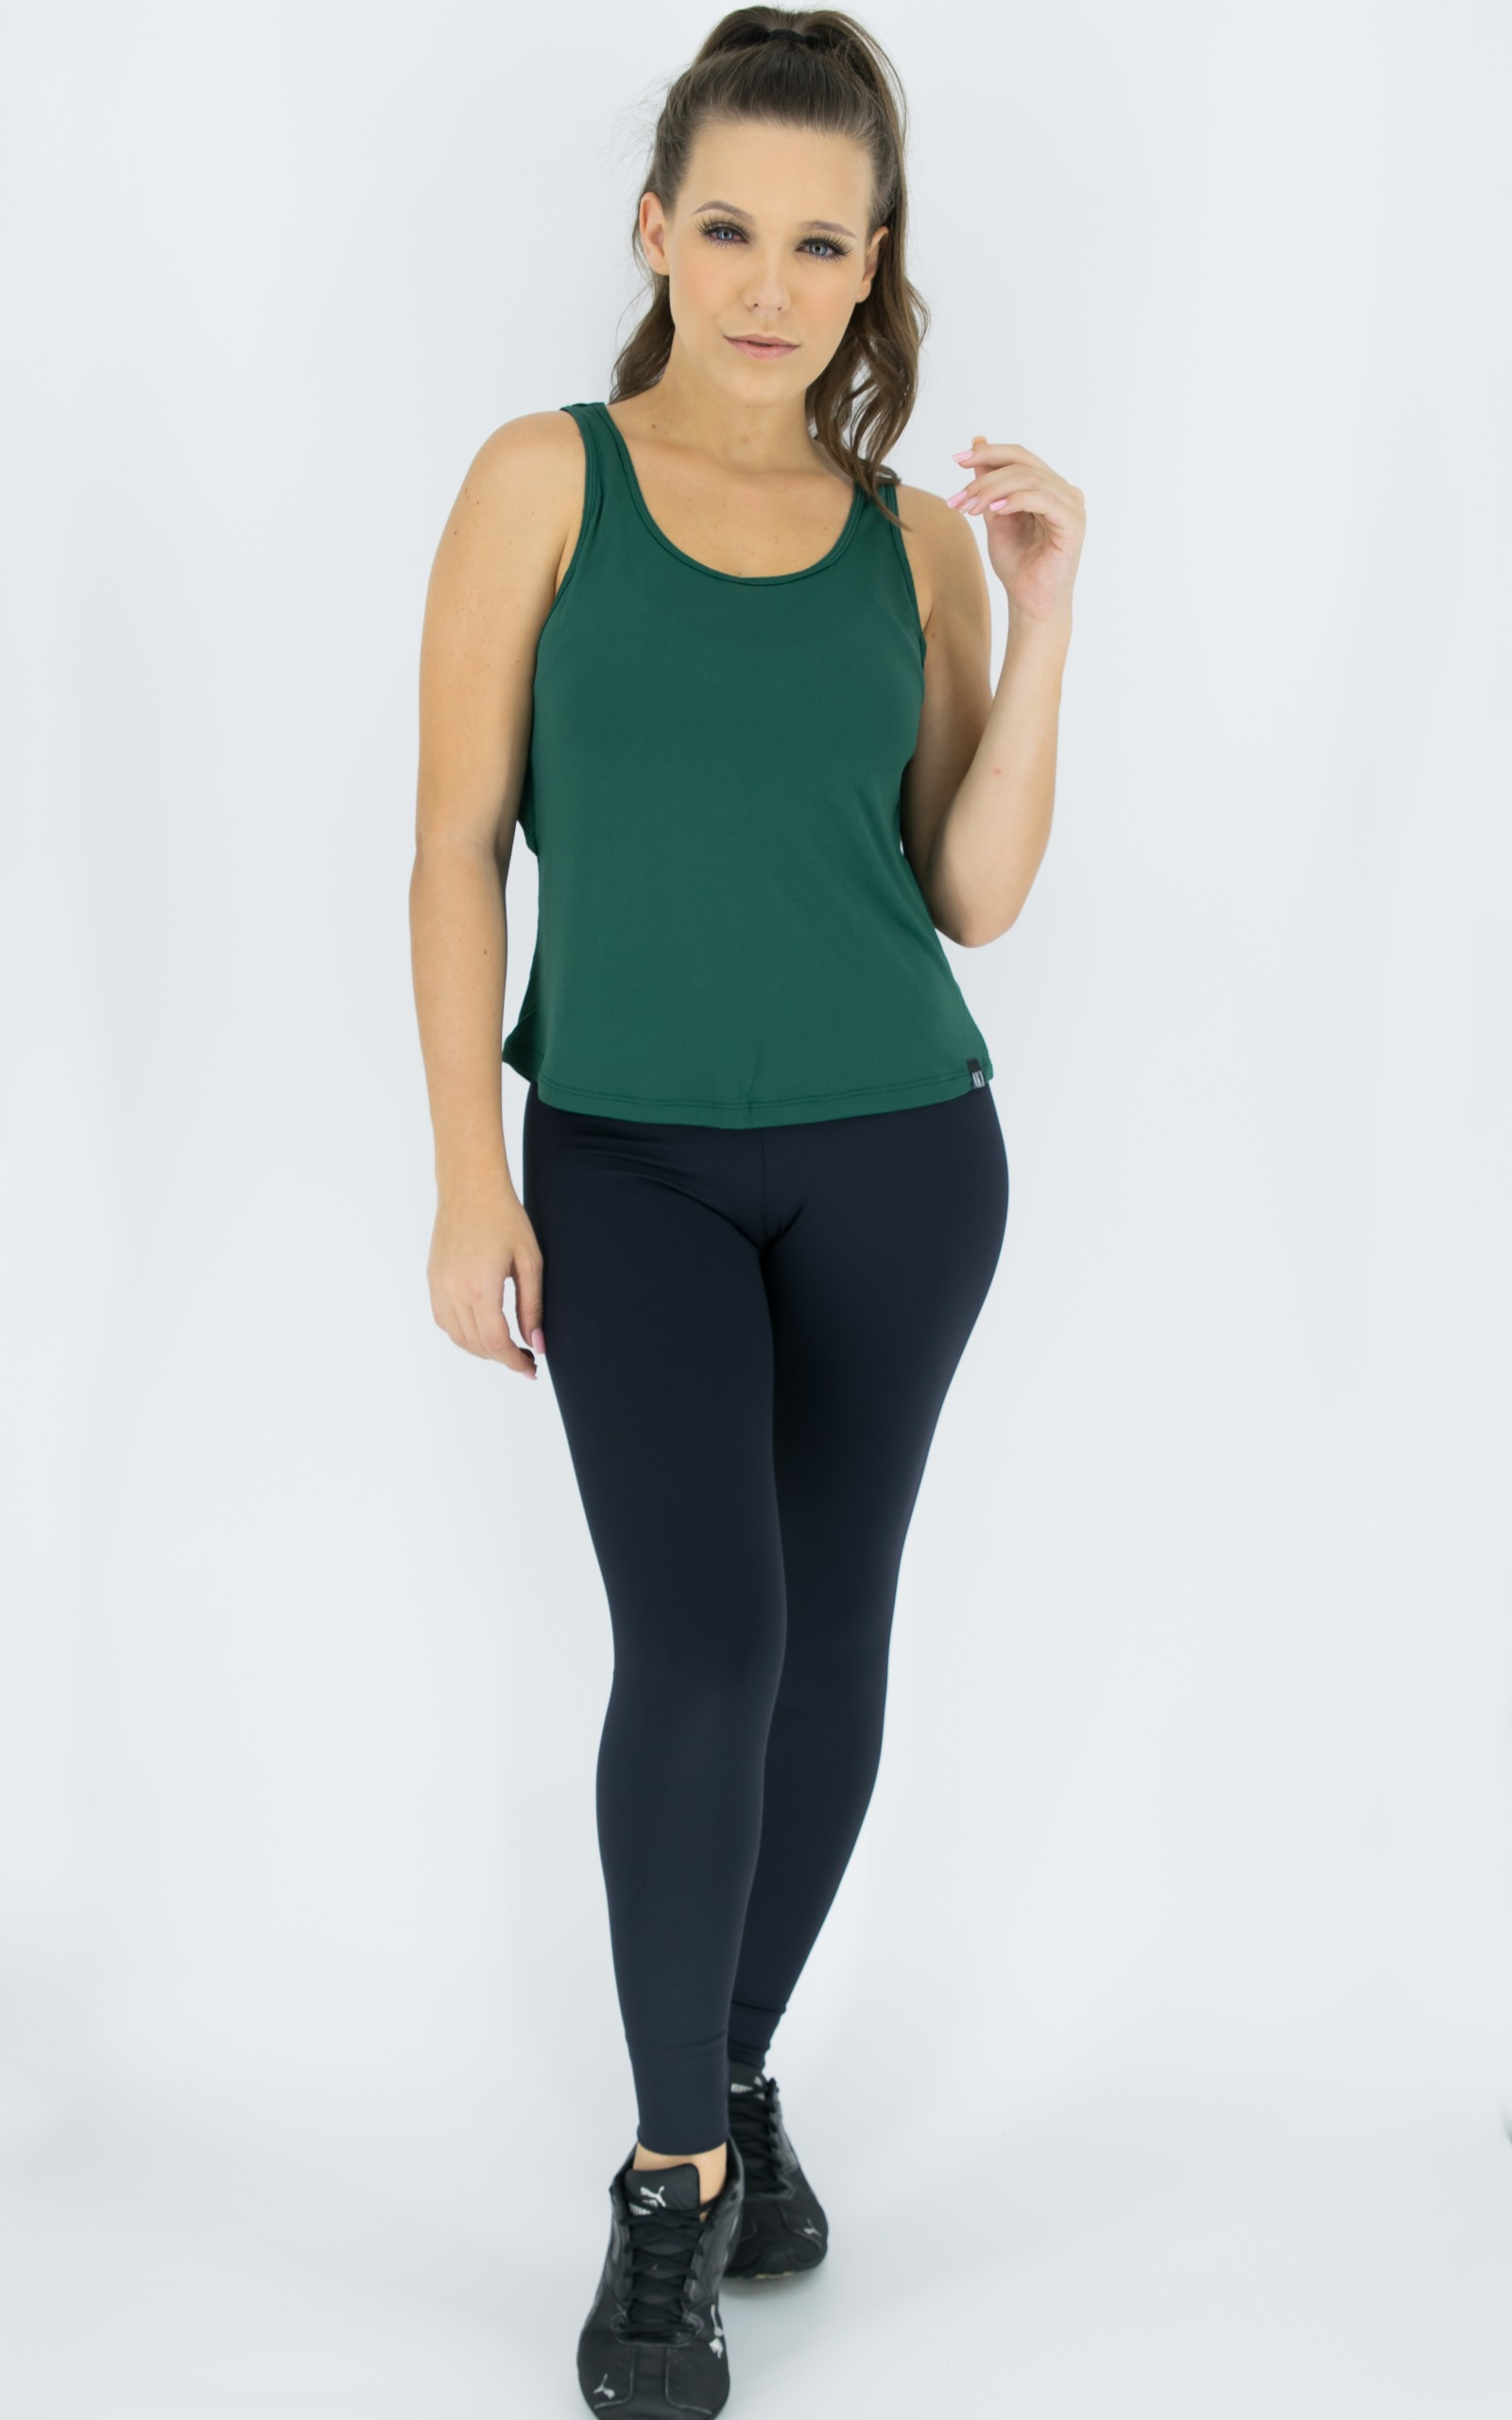 Regata Lux Verde, Coleção Move Your Body - NKT Fitwear Moda Fitness